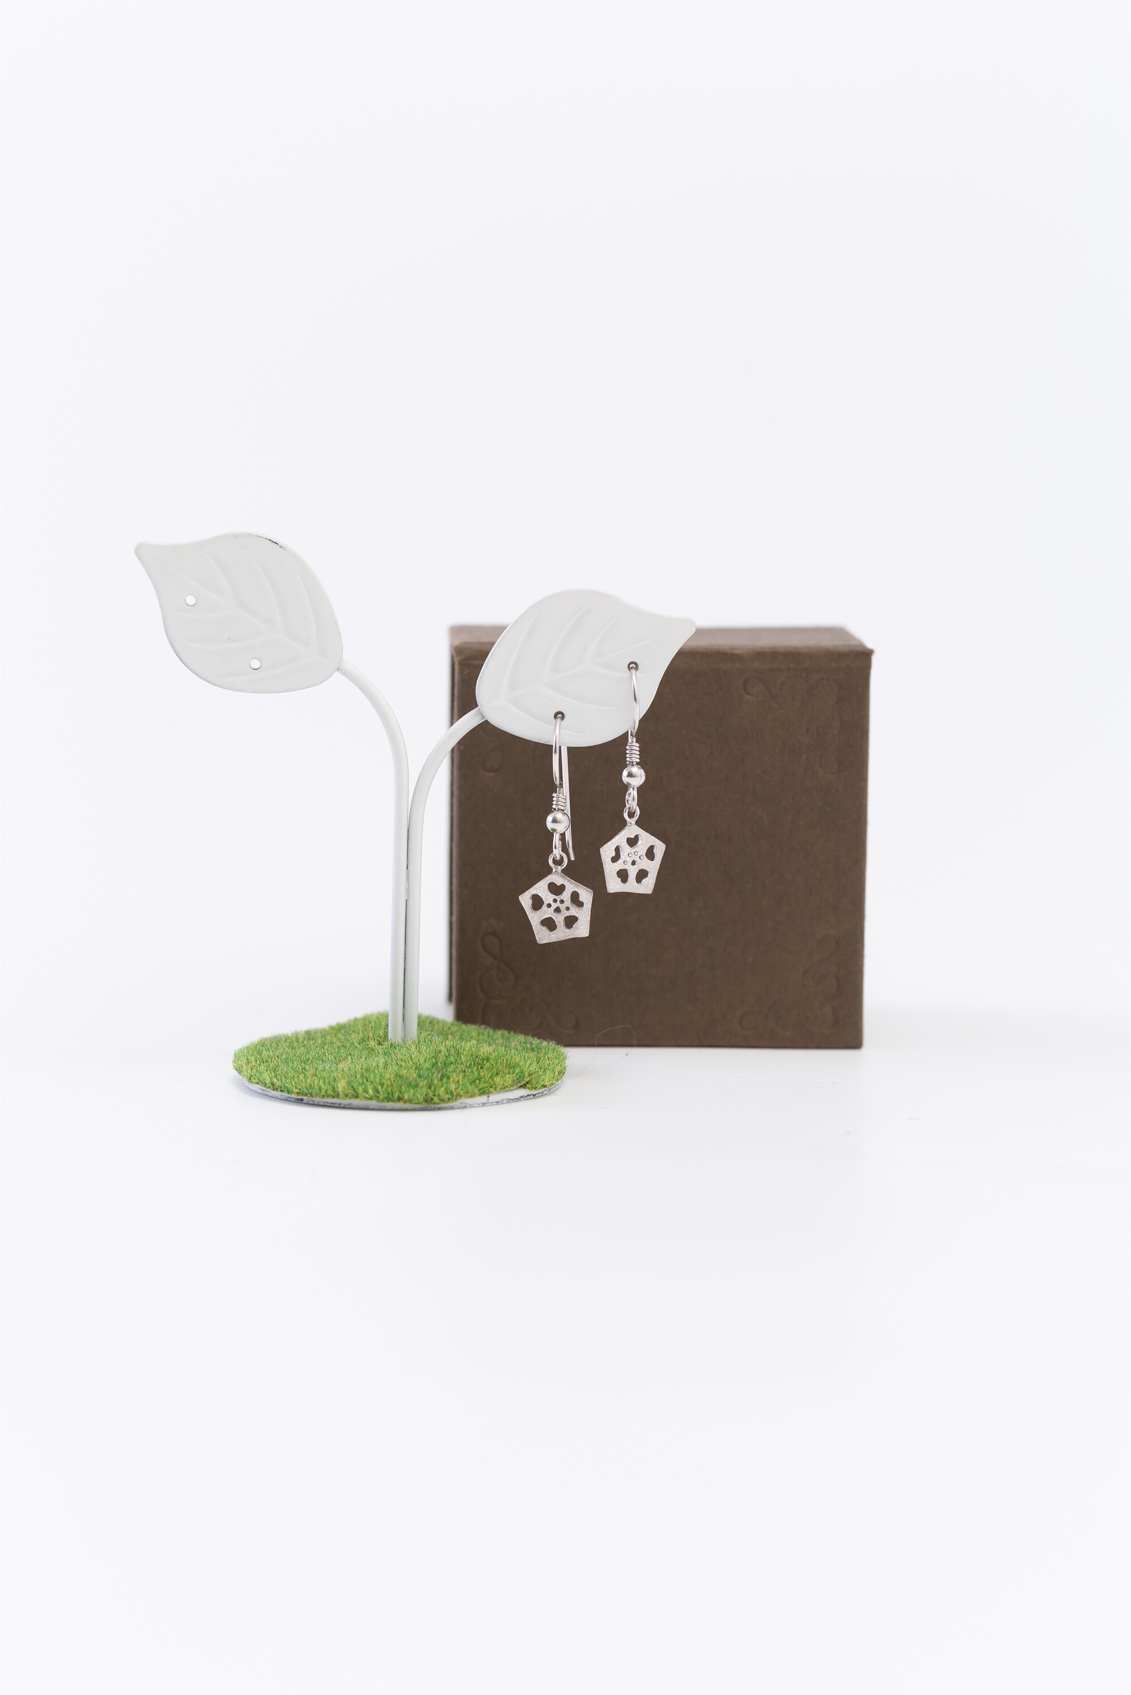 Okra_Earring(silver) (hook type)&box